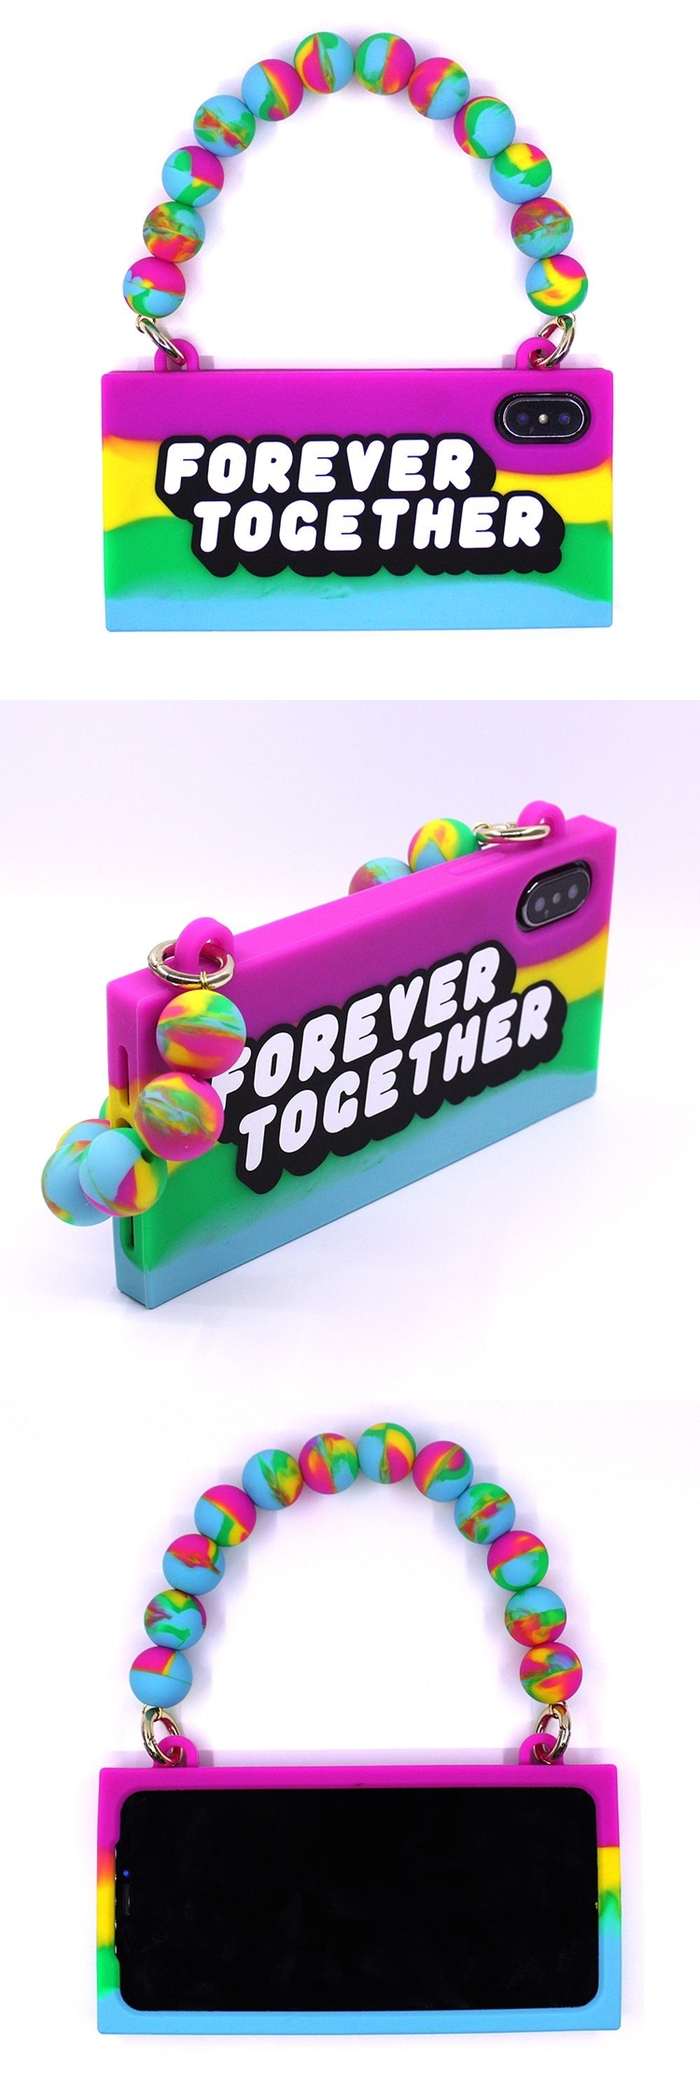 Candies|彩虹系列 FOREVER TOGETHER手提包-IPhone X/XS